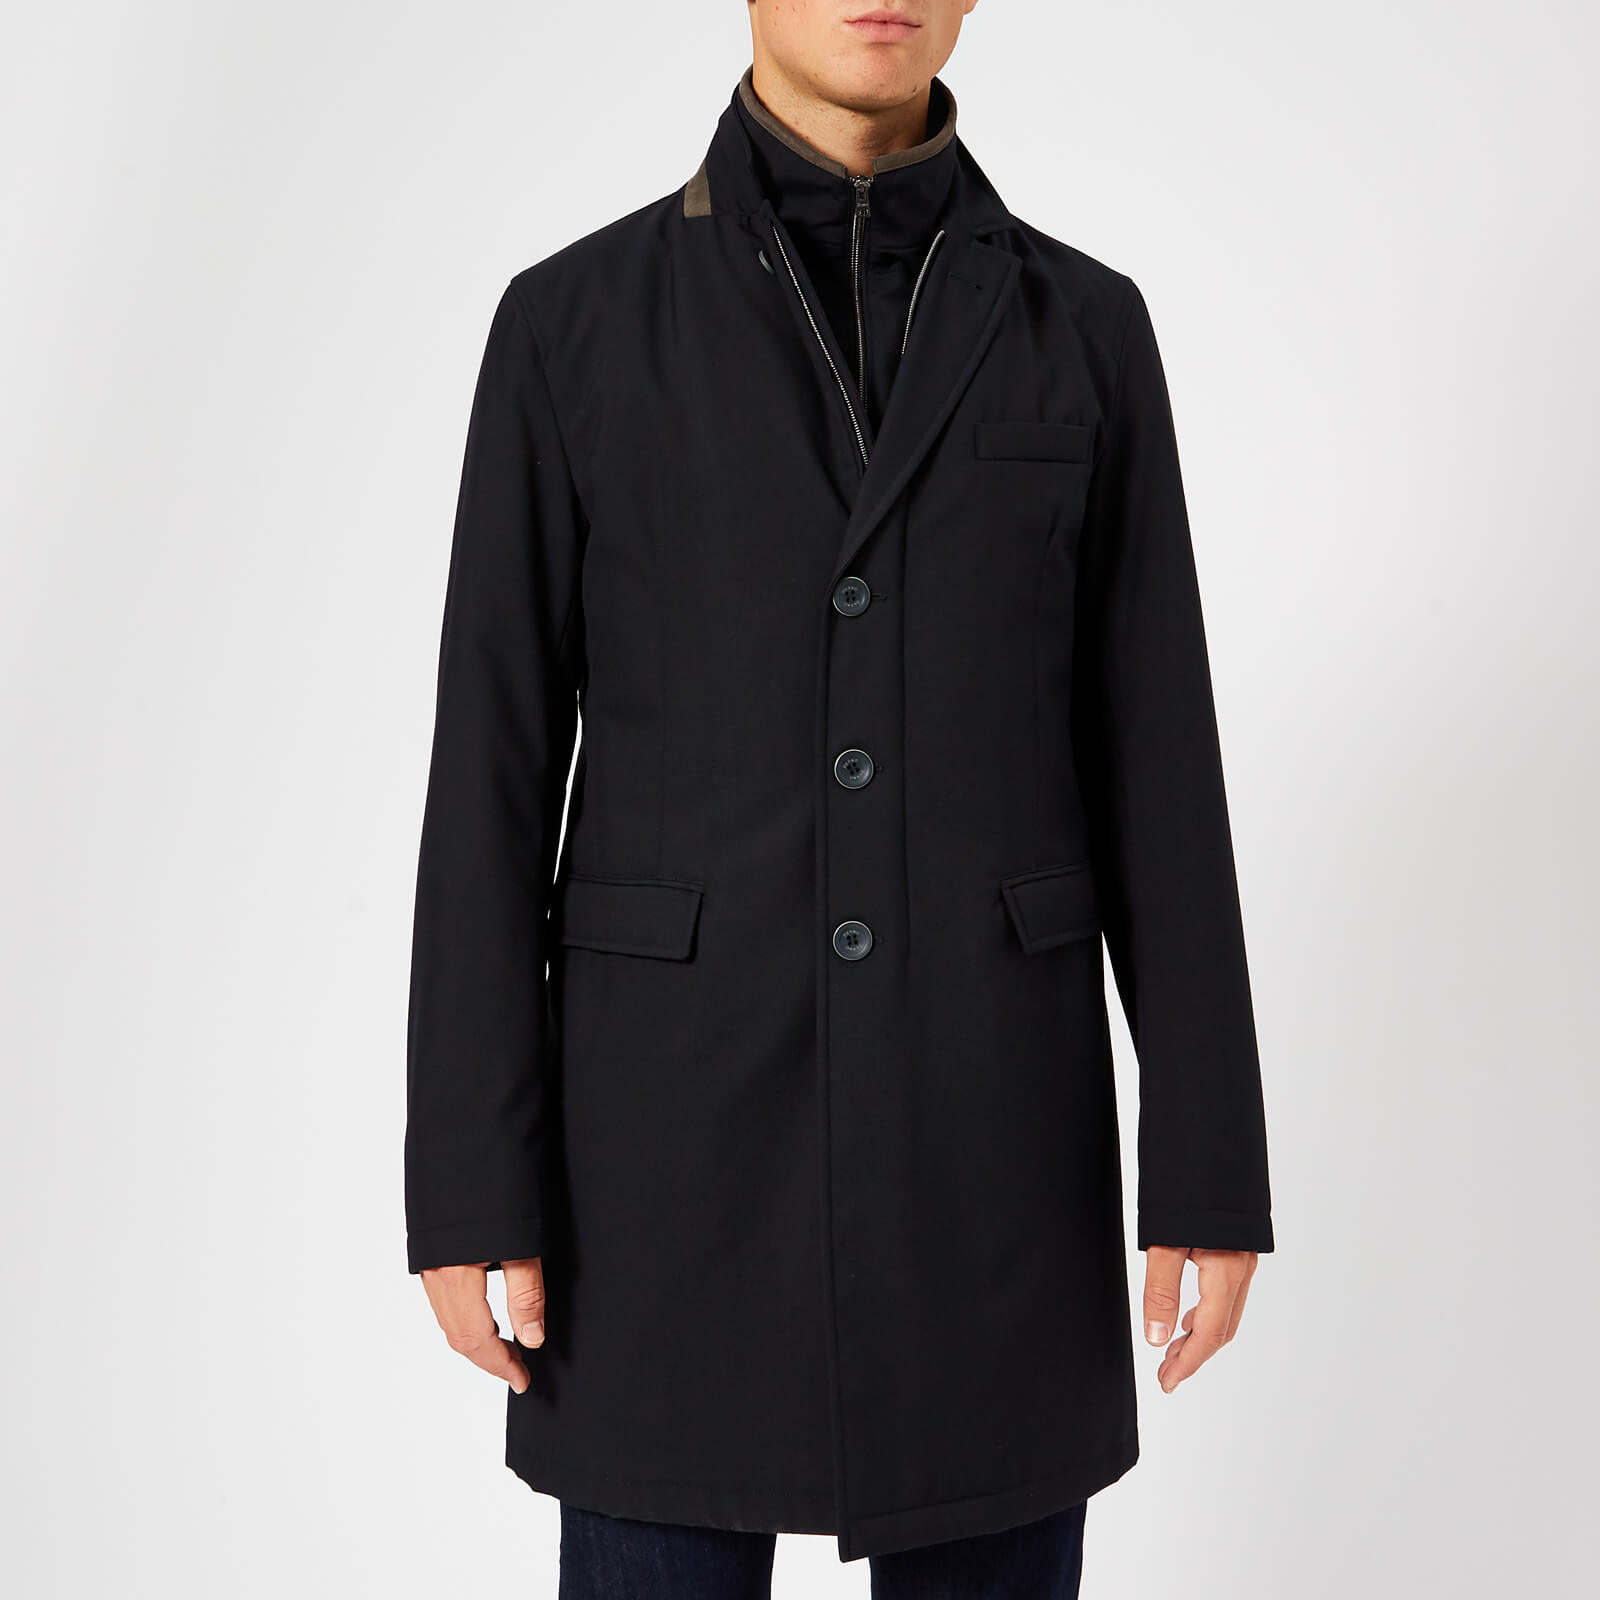 862d5bd7e6d Herno Men s Classic Single Breasted Over Coat - Navy - Free UK Delivery  over £50